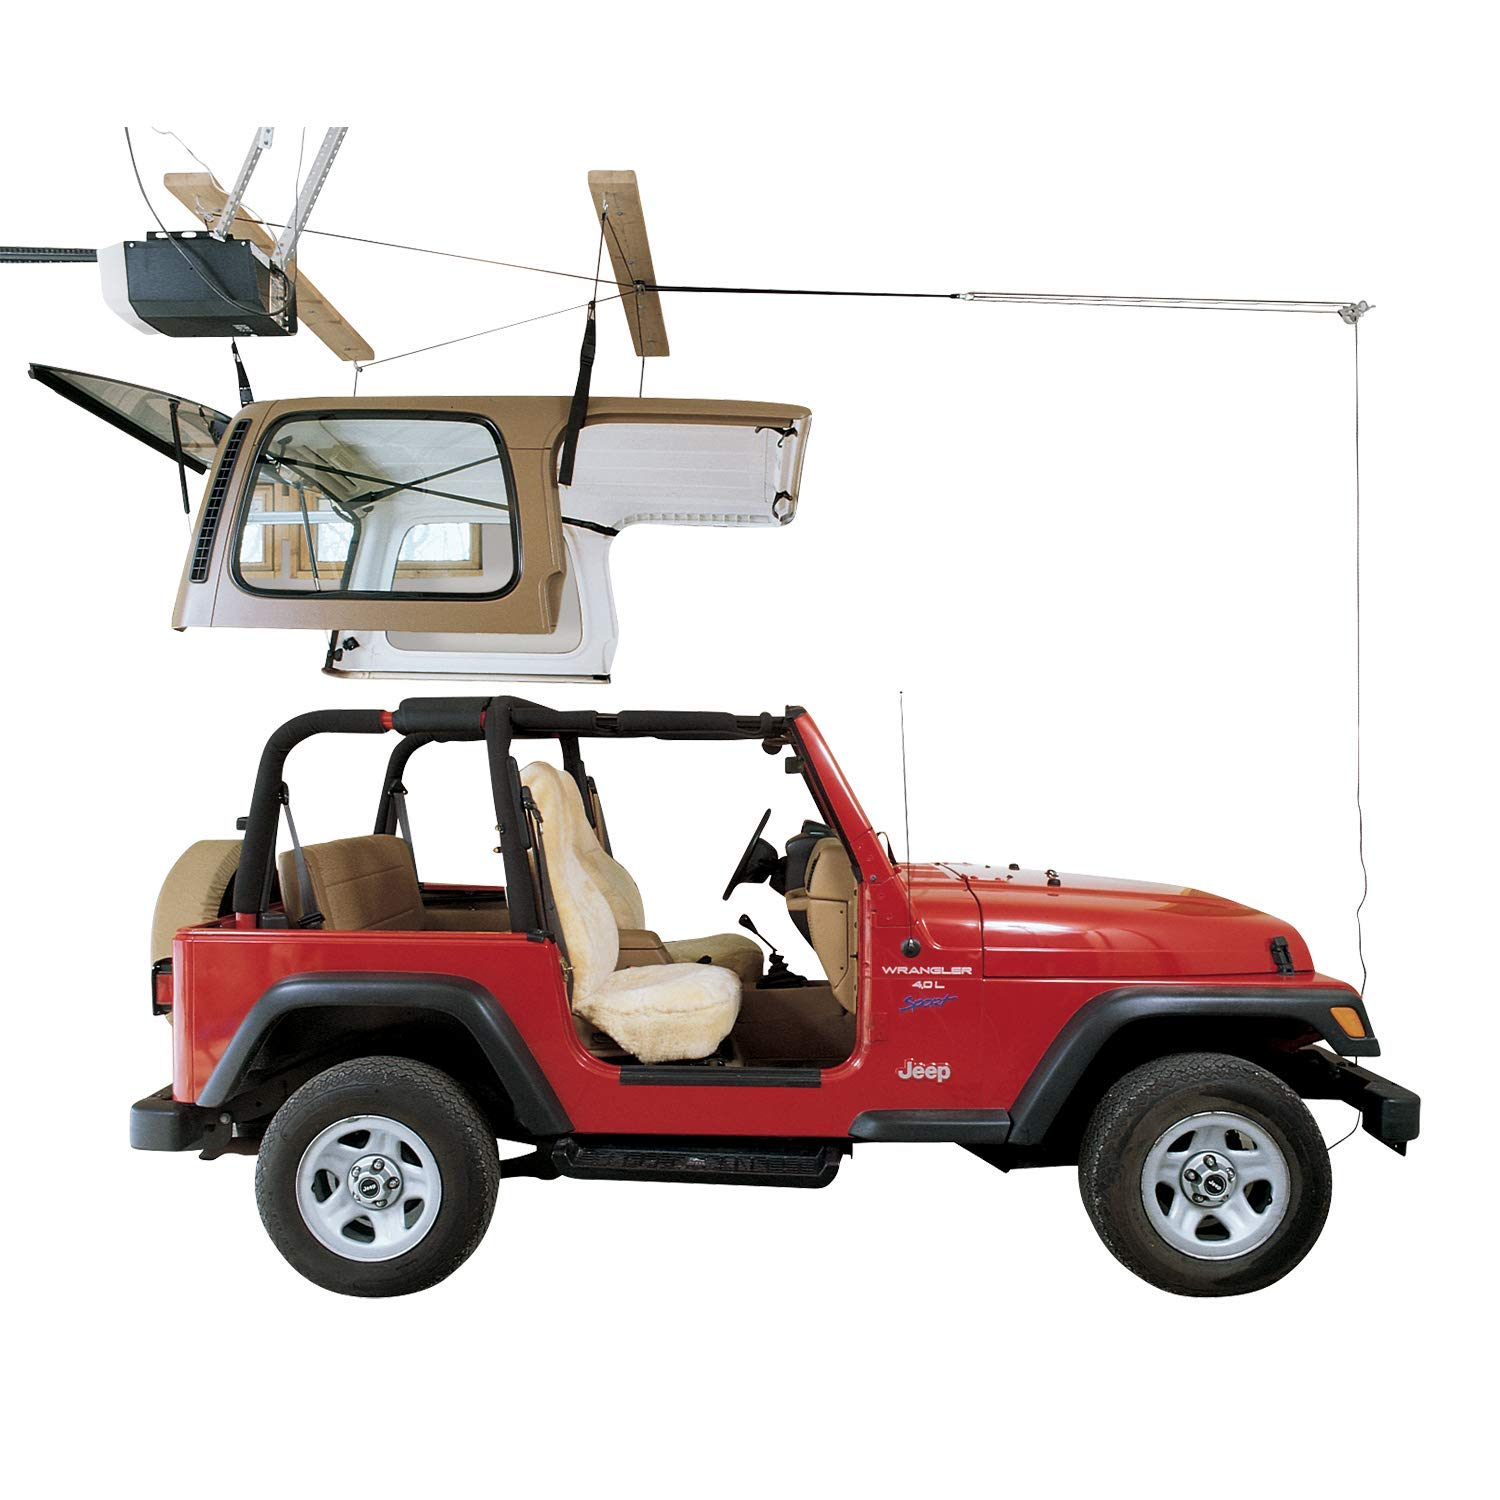 HARKEN Jeep Hardtop Garage Storage Ceiling Hoist | 4 Point Jeep System |6:1 Mechanical Advantage | Lift, Single-Person, Hanger, Pulley, Wrangler